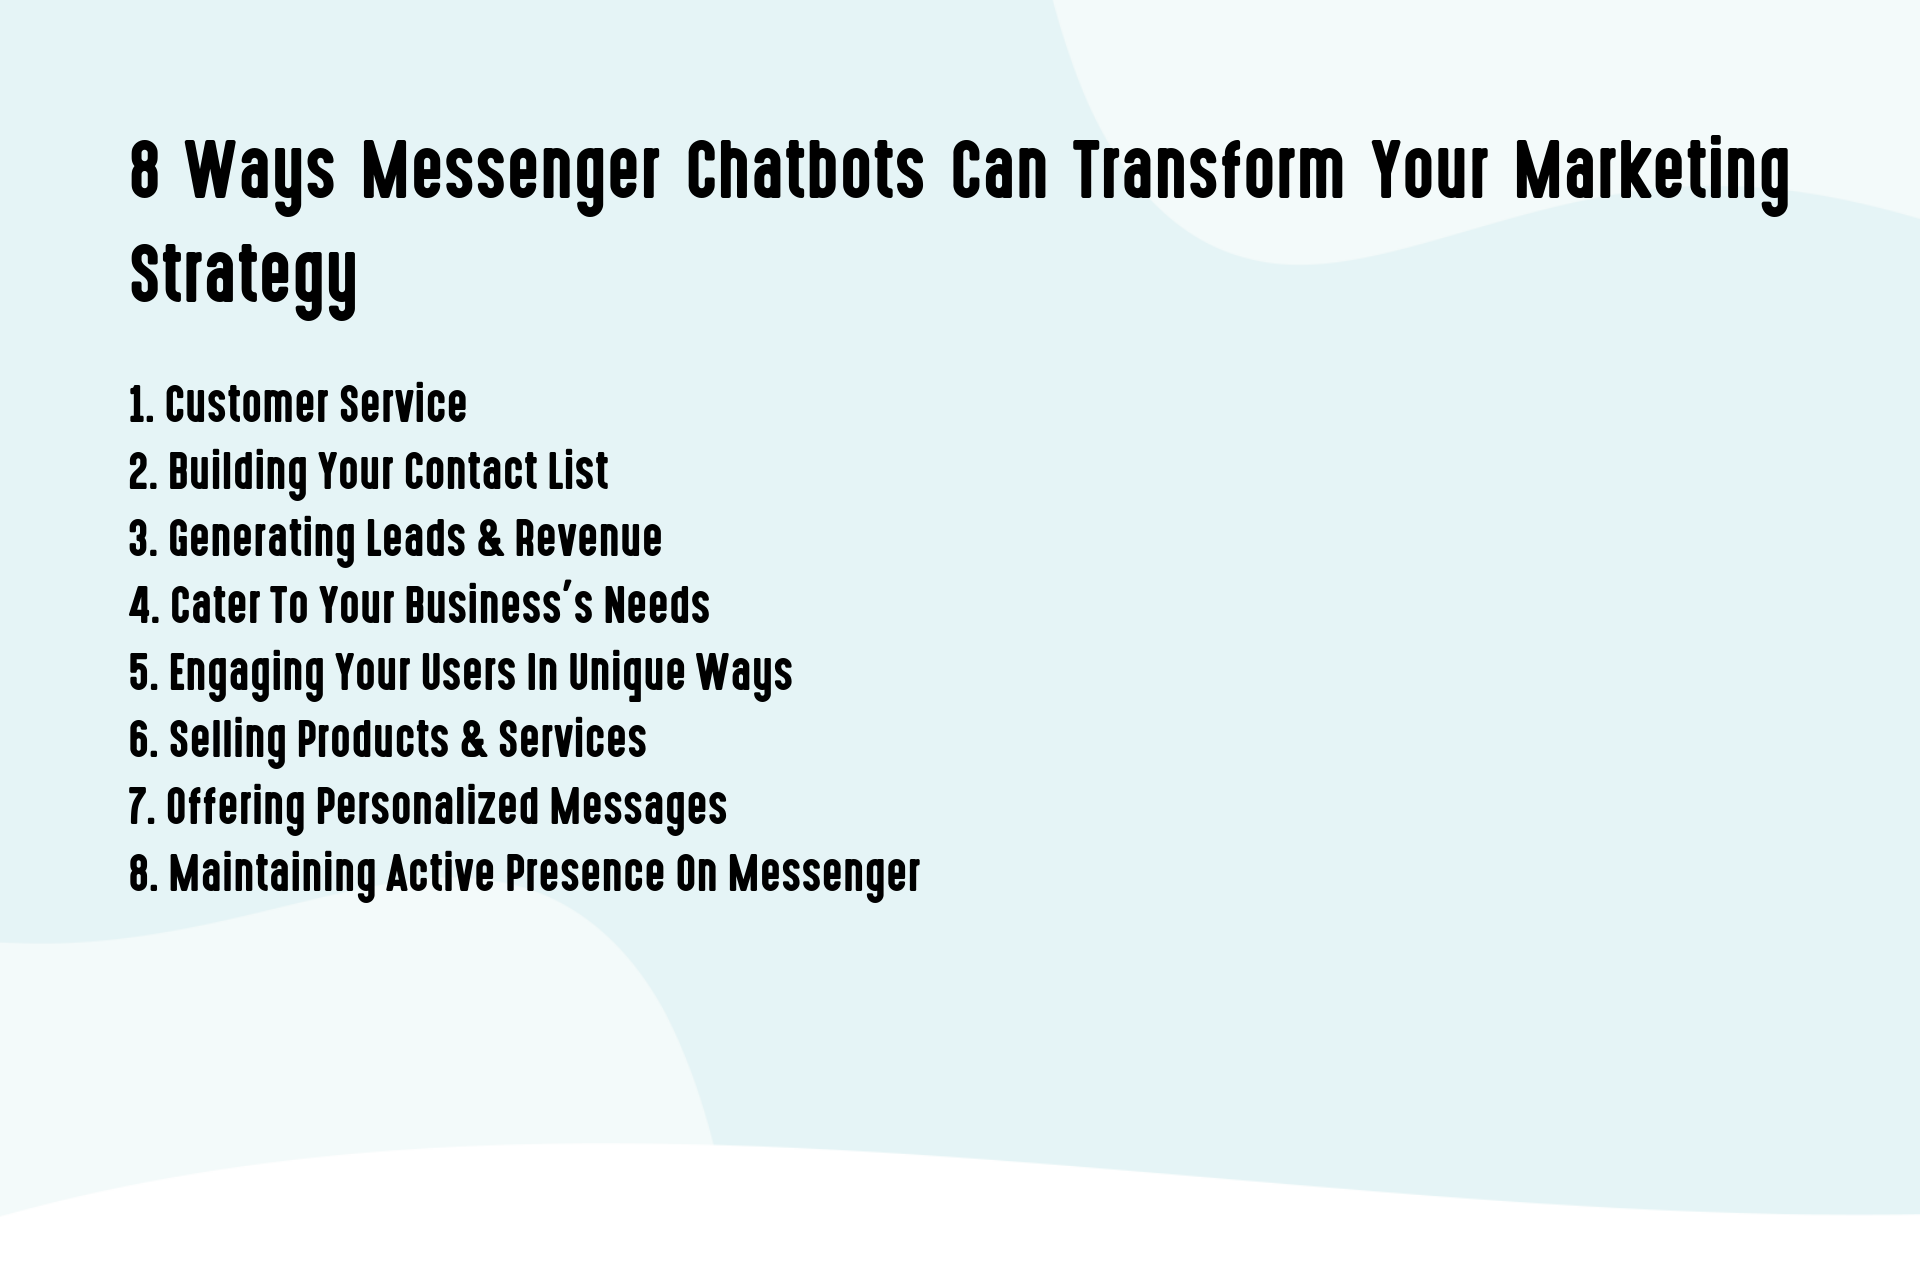 8 Ways Messenger Chatbots Can Transform Your Marketing Strategy